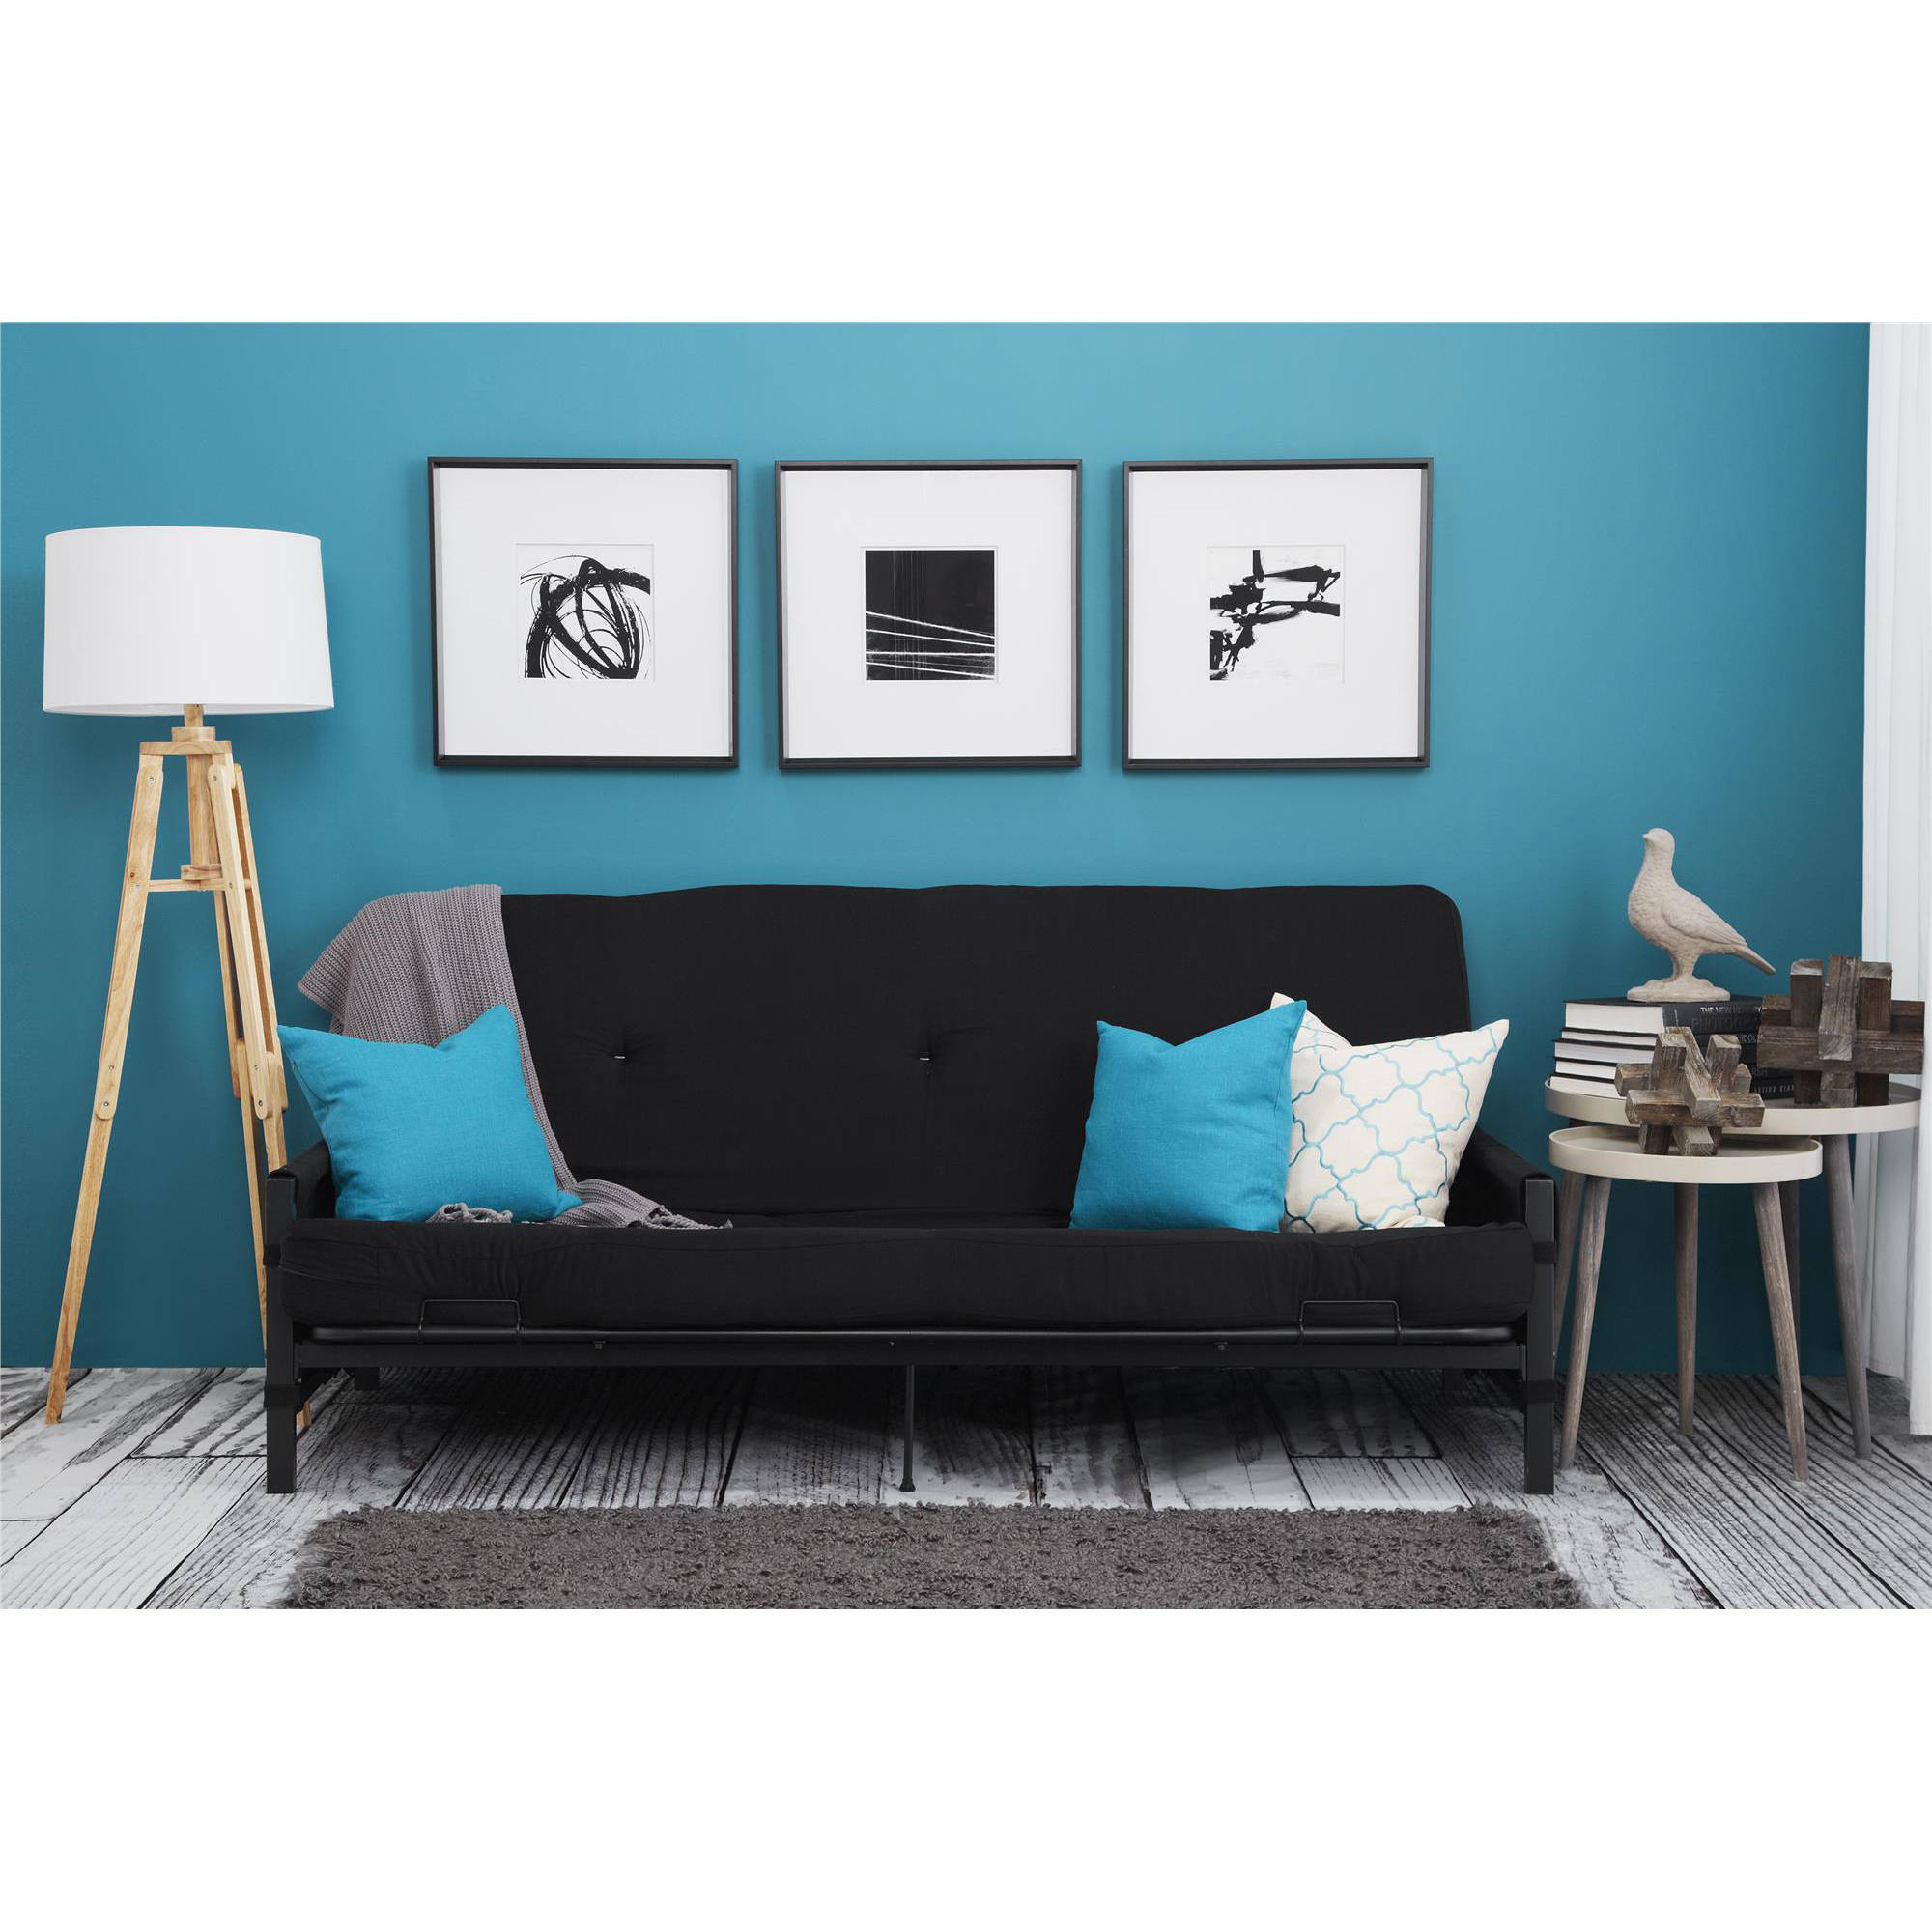 Details About Full Size Futon W 6 Mattress Frame Black Storage Arm Convertible Couch Guest